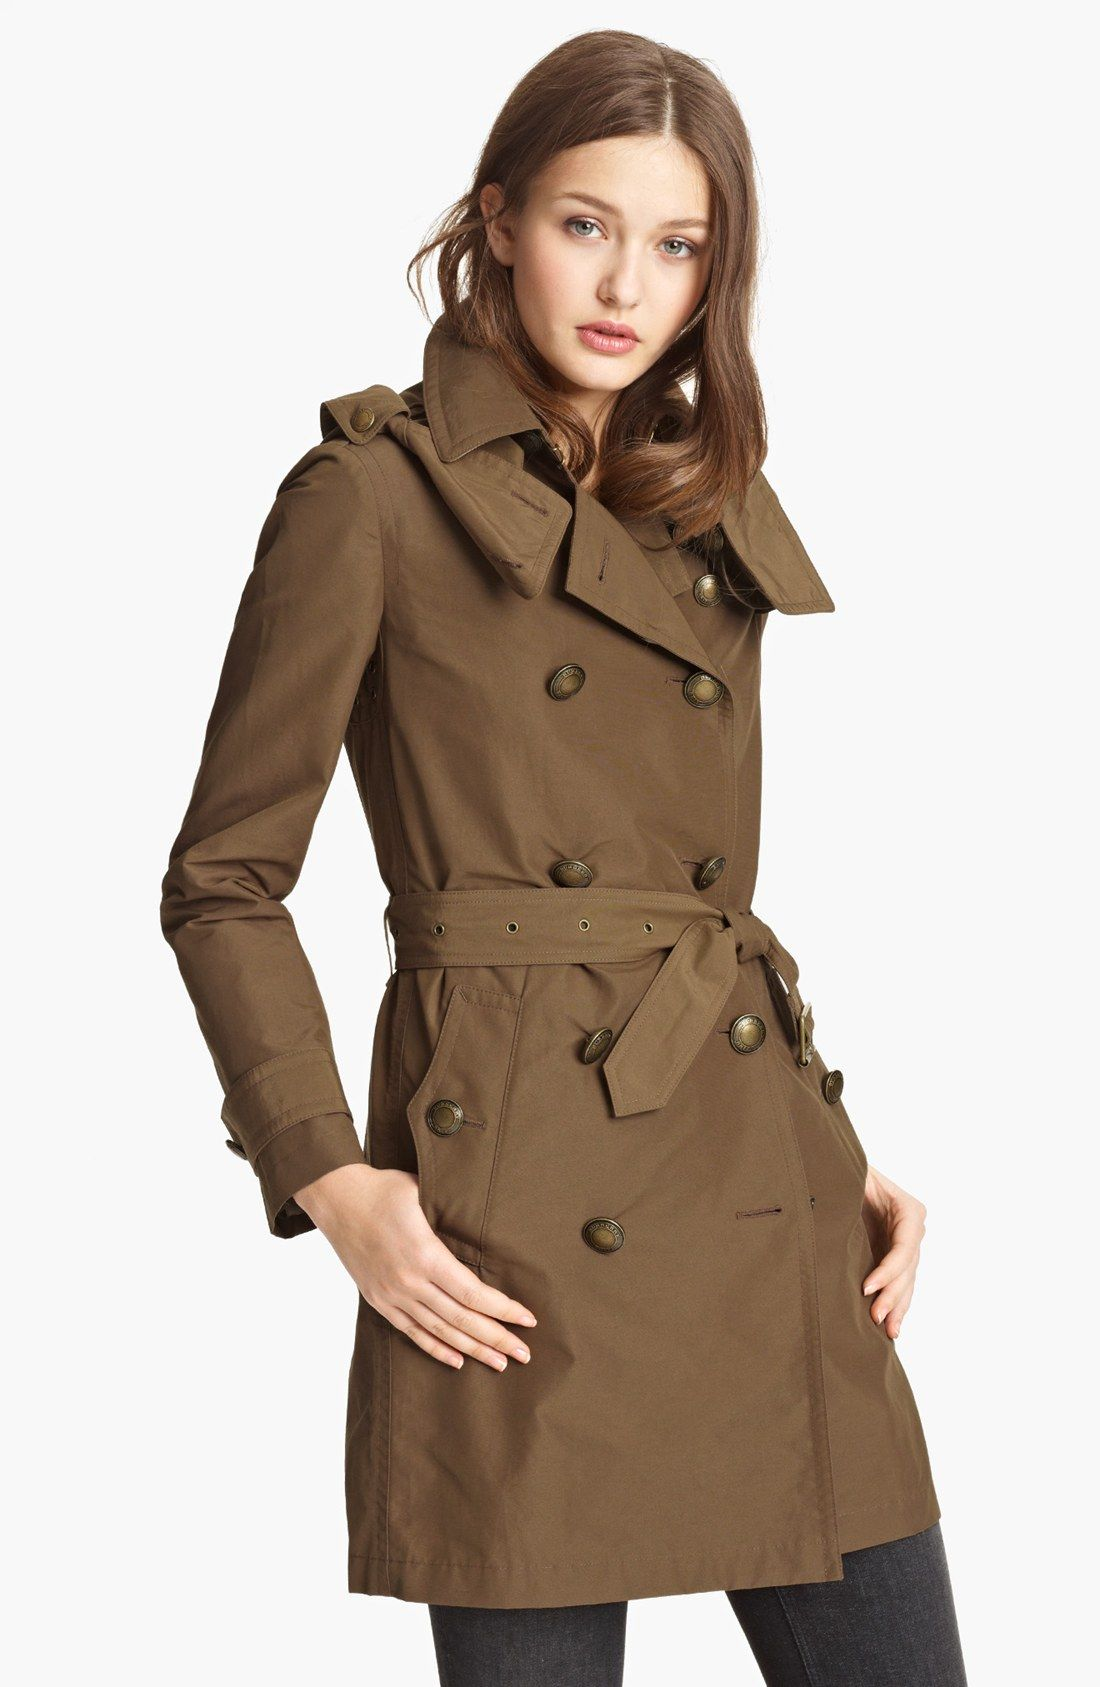 Women Winter Trench Coat | Fashideas.com | Trench Coat for Women ...